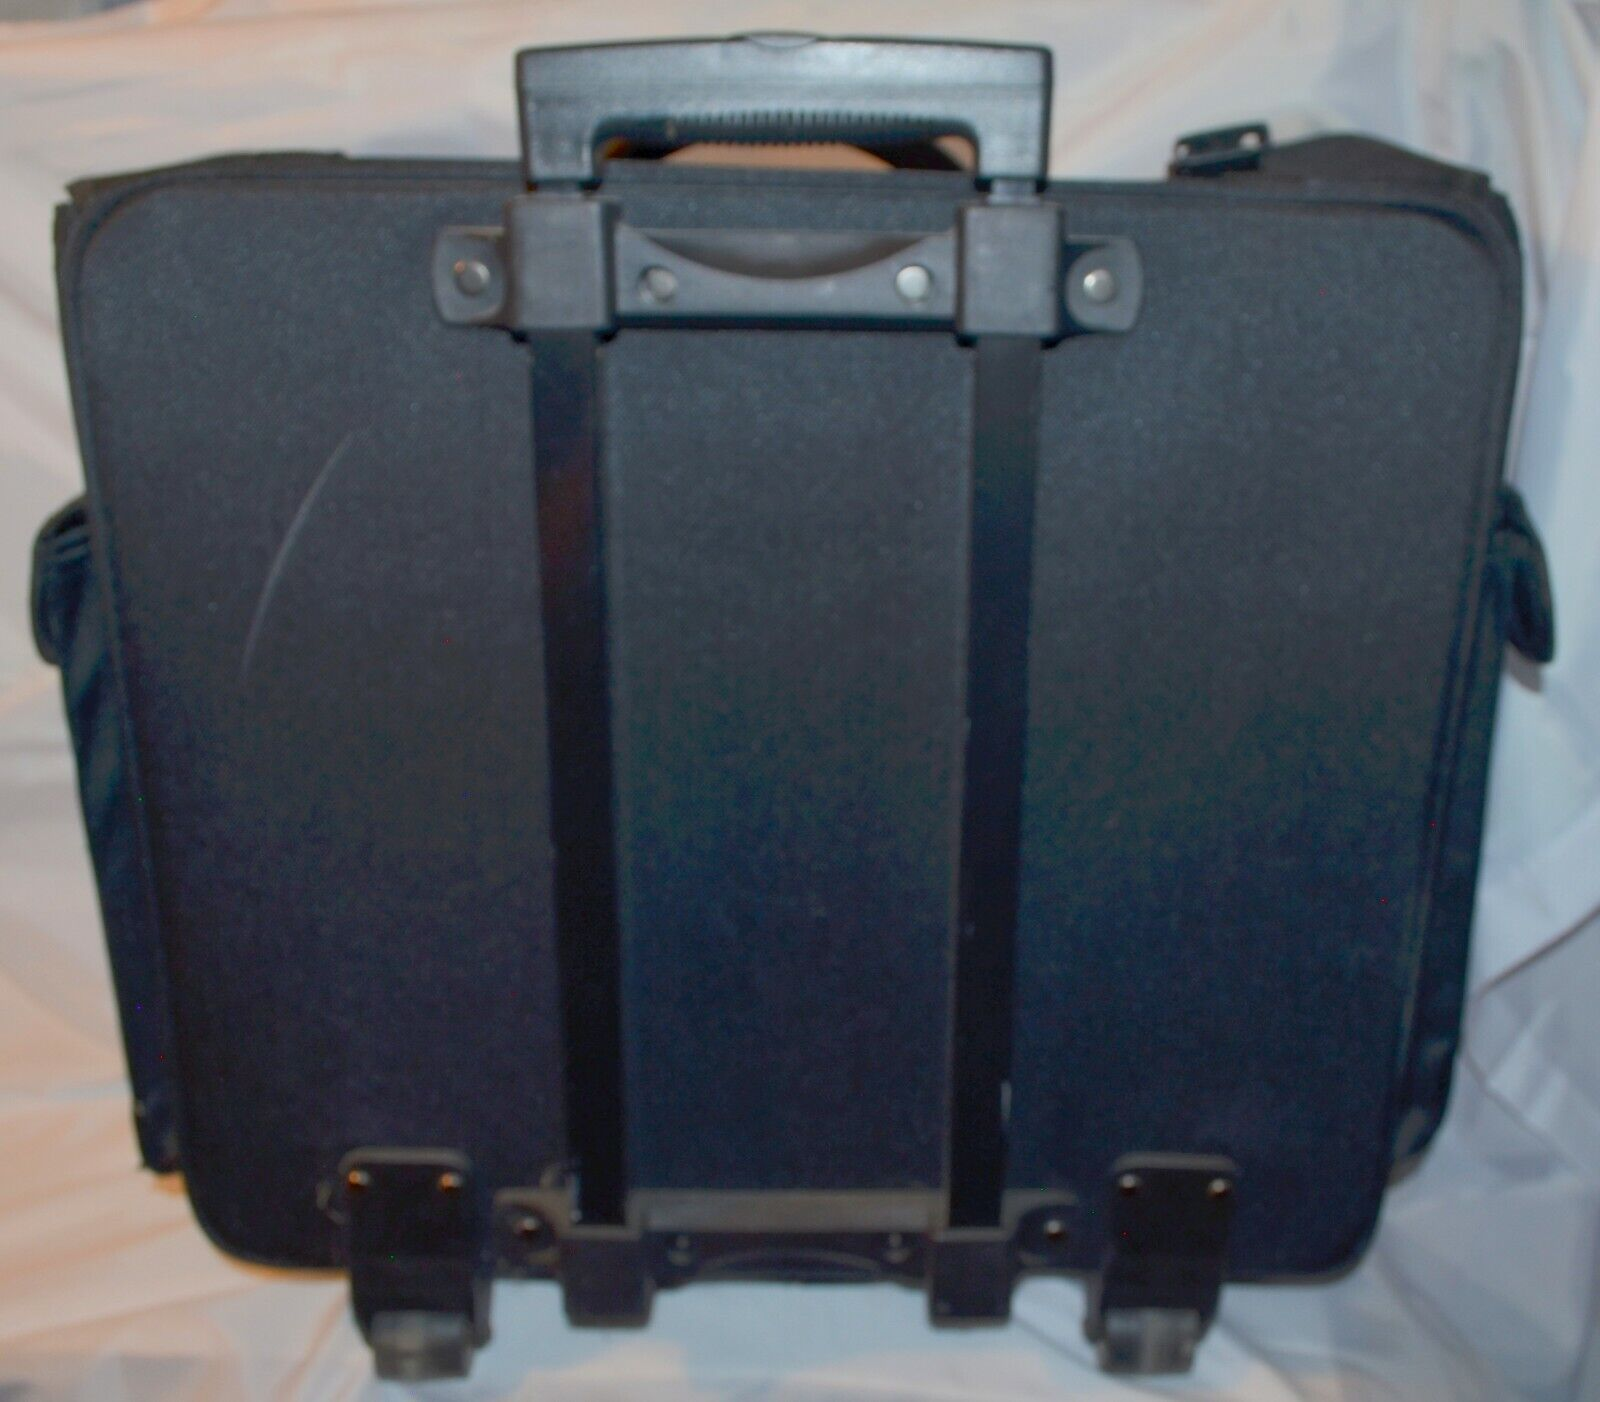 Sbook Companion Rolling Tote Storage Bag Container Travel Large